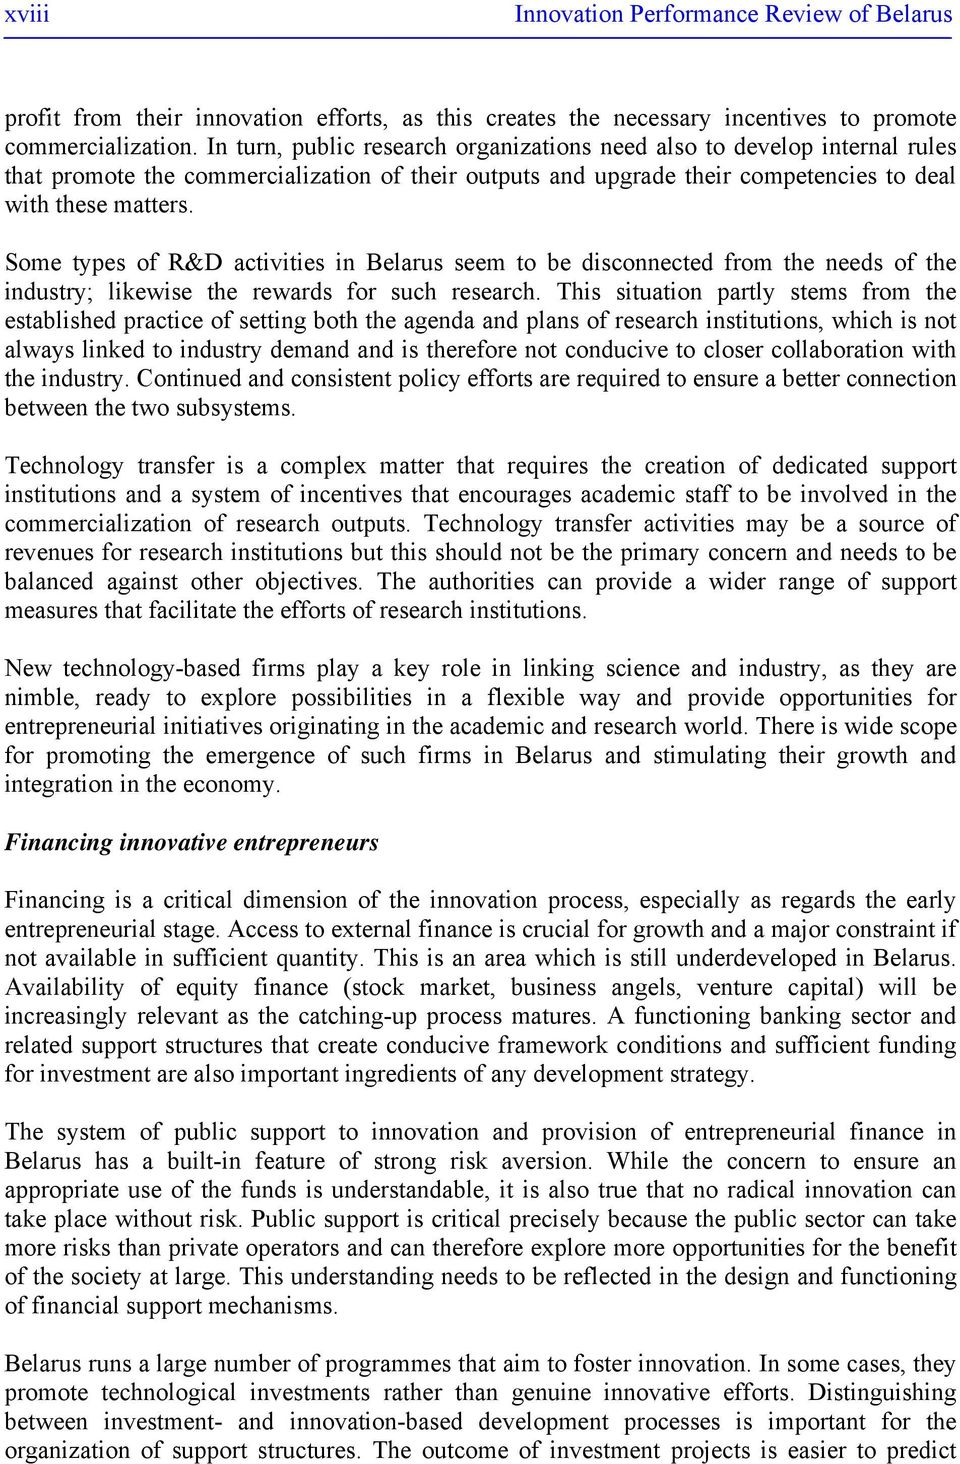 a research on the economic and financial development of belarus Post-graduate student research project financial market development and integration: behavioural relationship between macro-economic and financial environment.